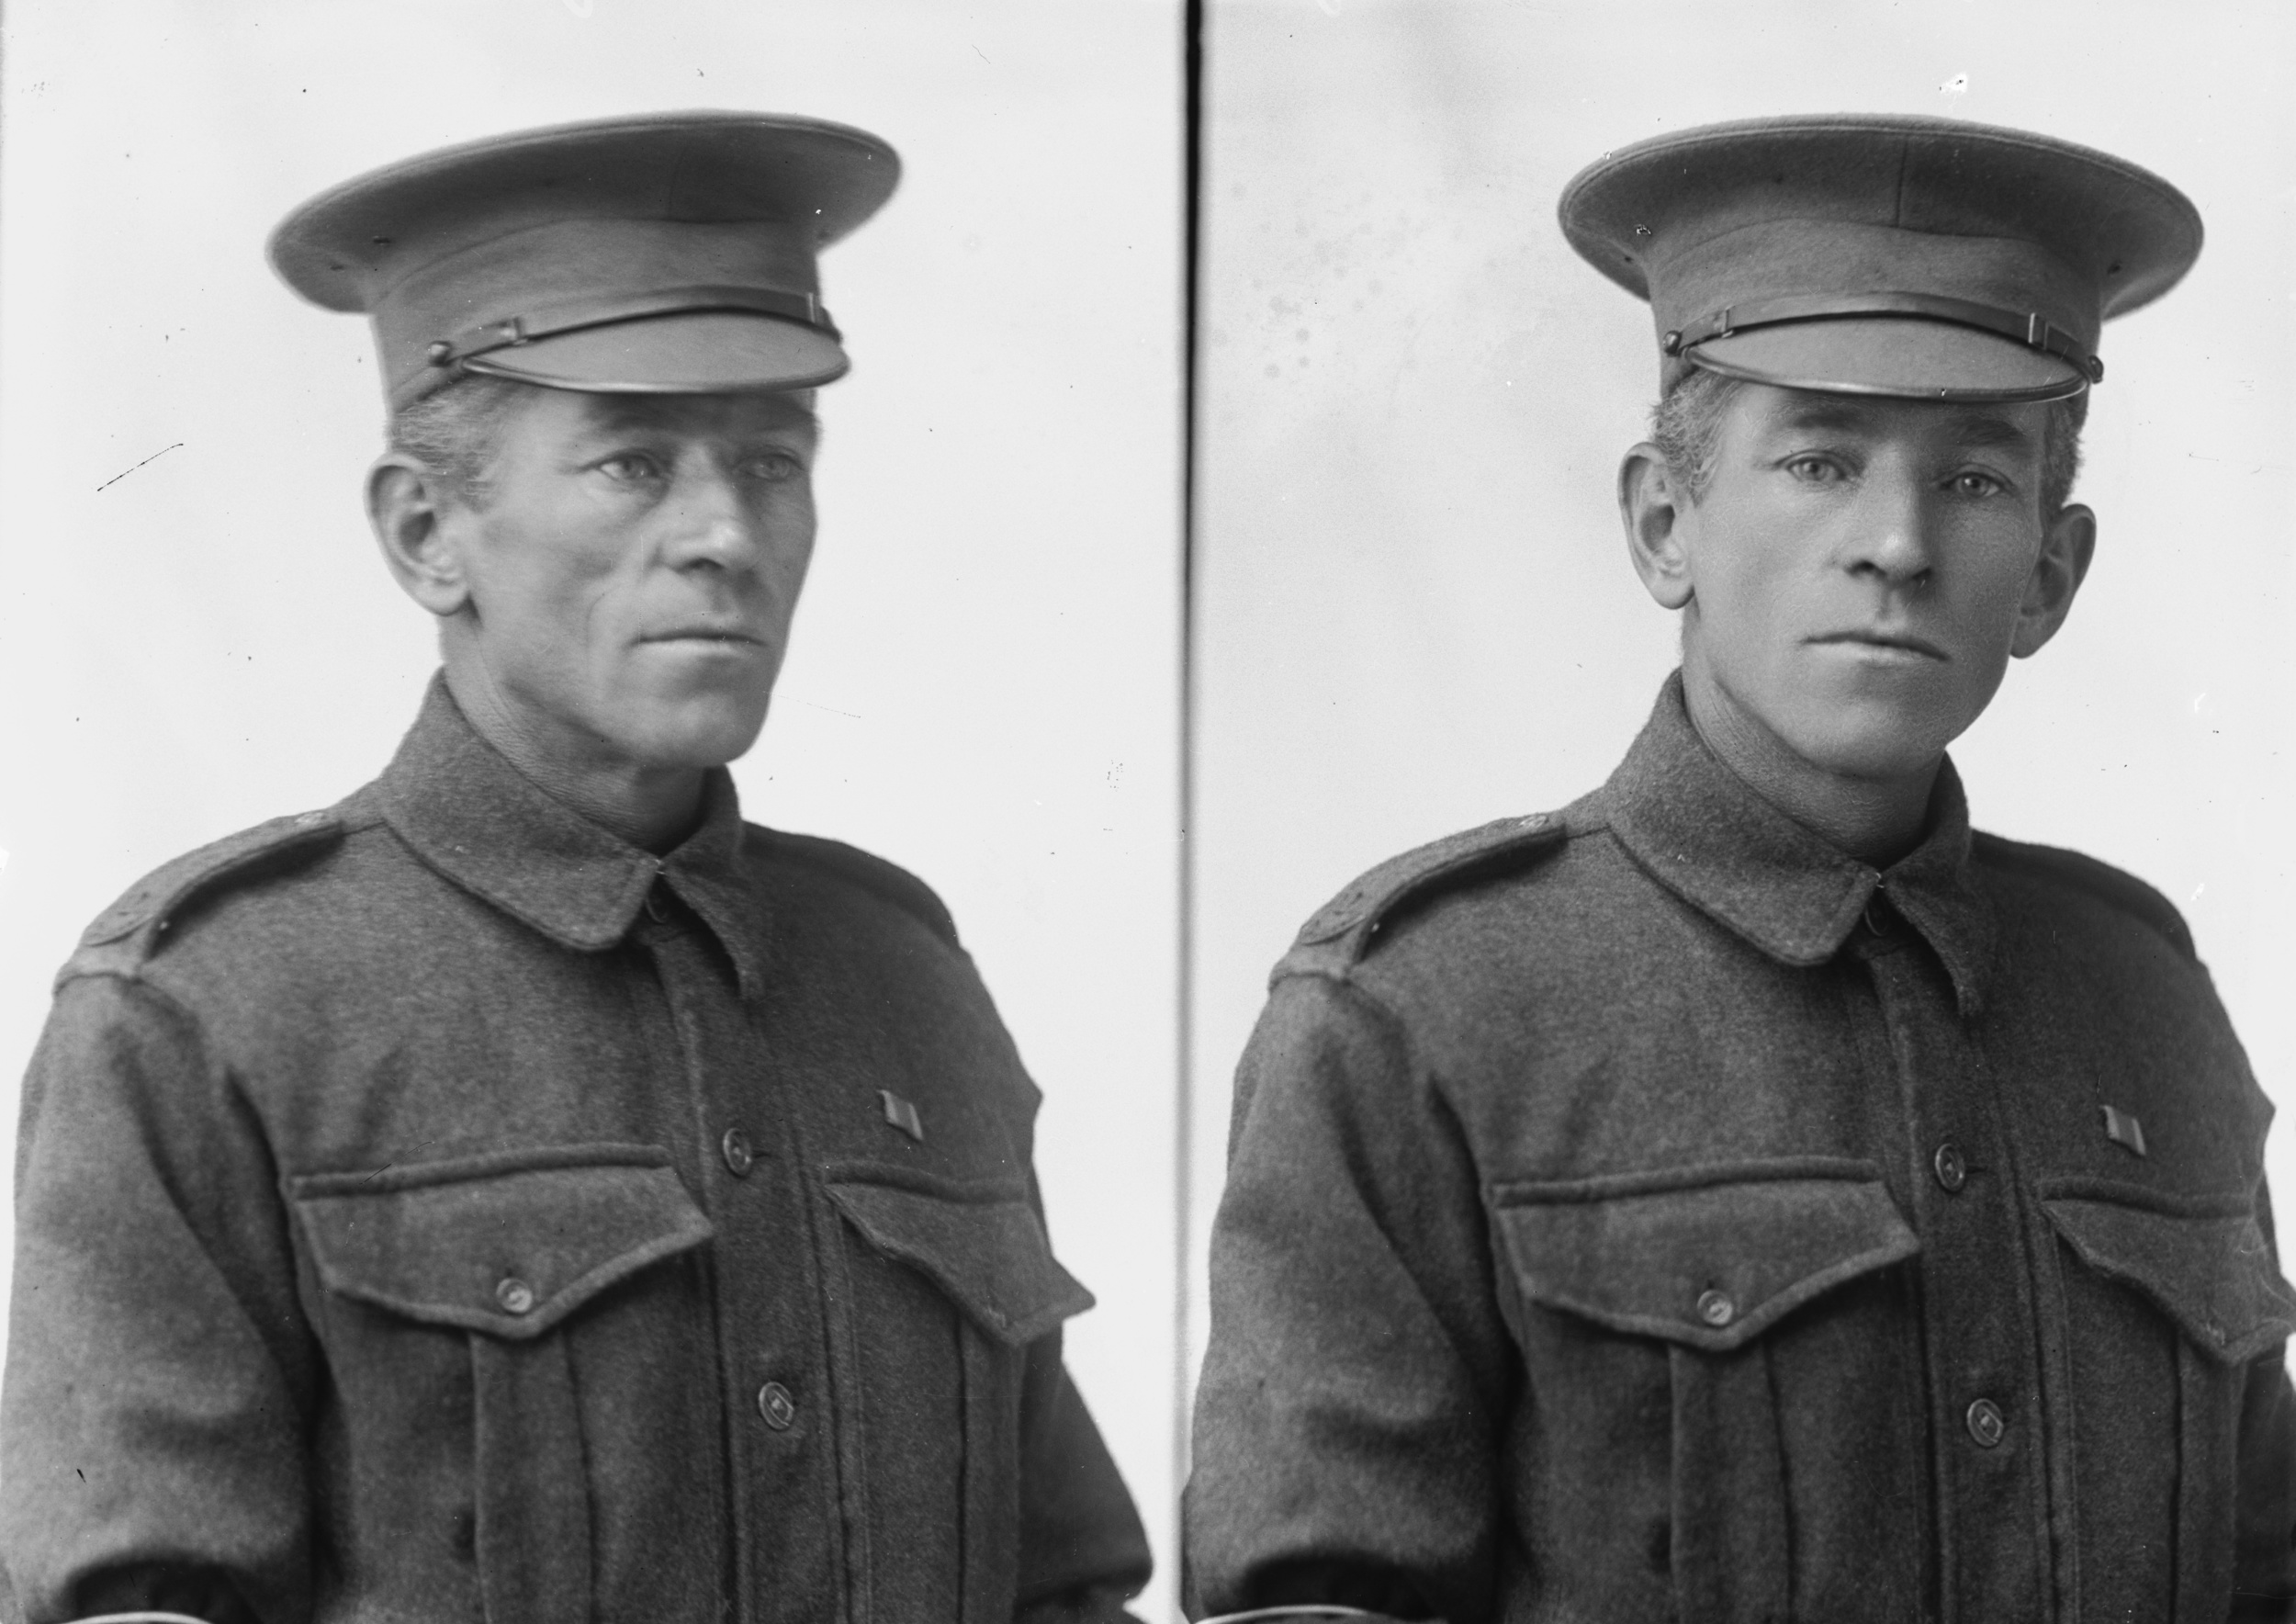 Photographed at the Dease Studio, 117 Barrack Street Perth WA Image courtesy of the State Library of Western Australia: 108648PD